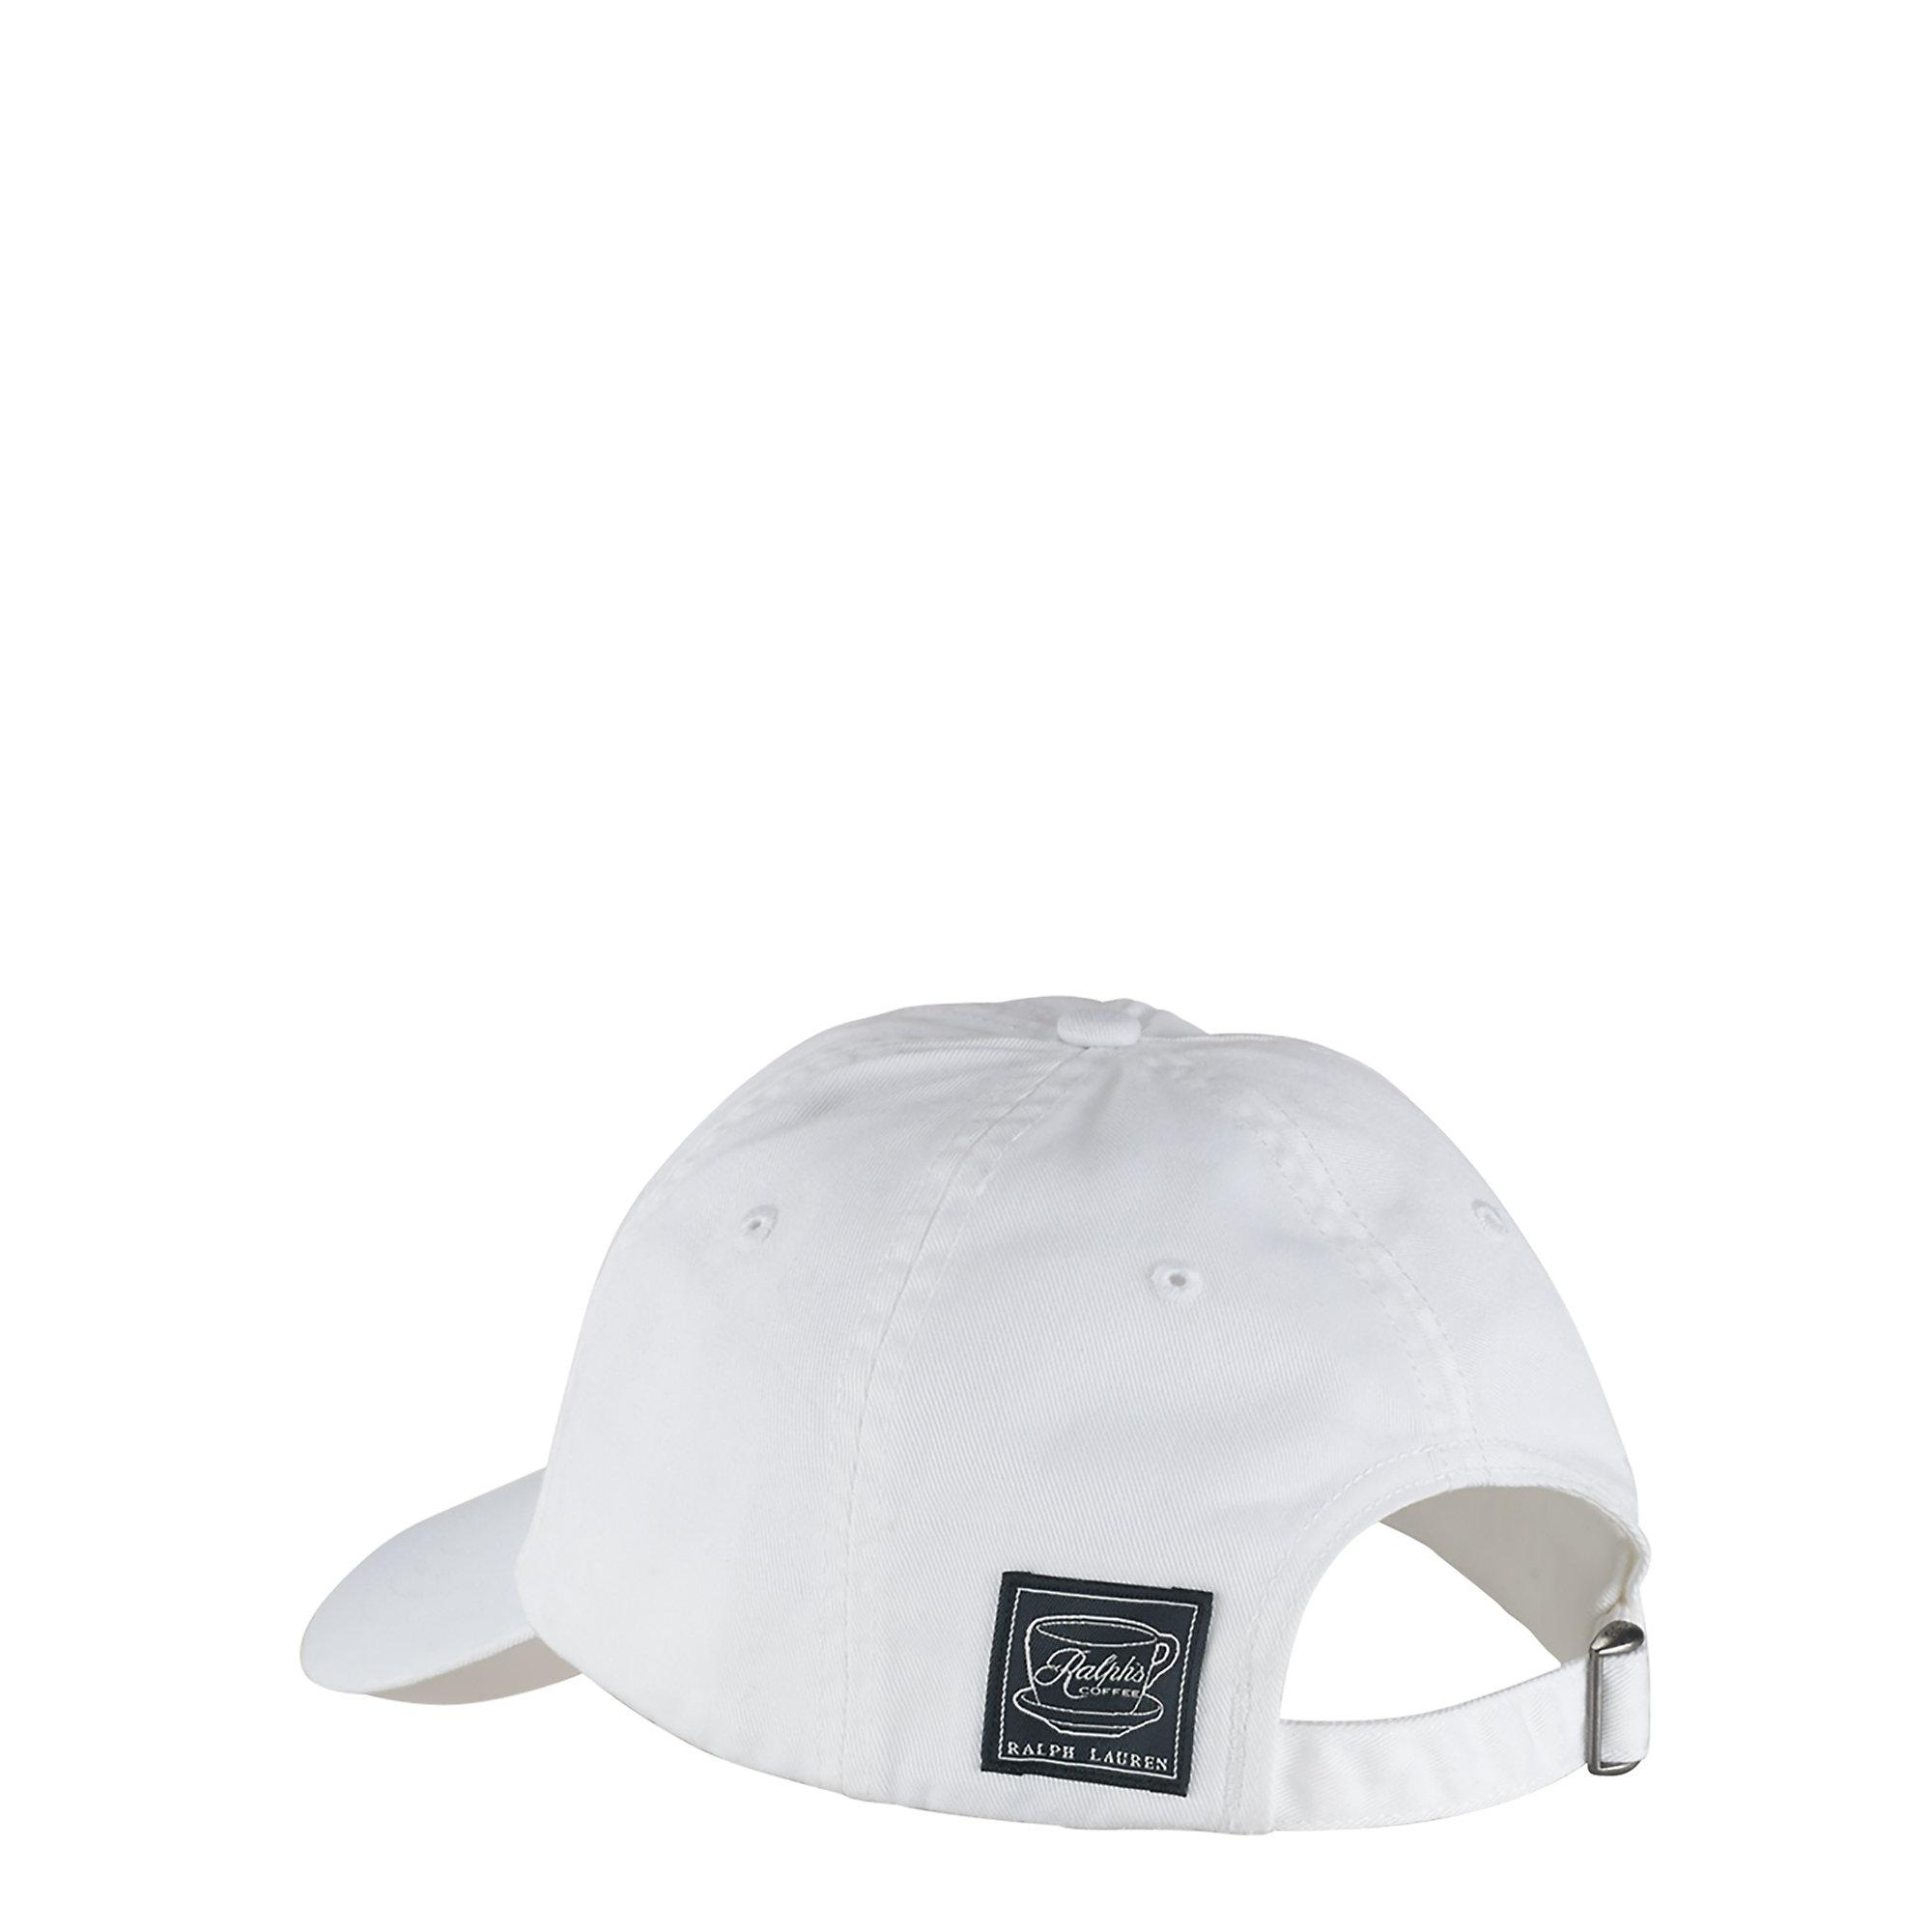 Lyst - Polo Ralph Lauren Ralph s Coffee Hat in White for Men 777ac7a6f666